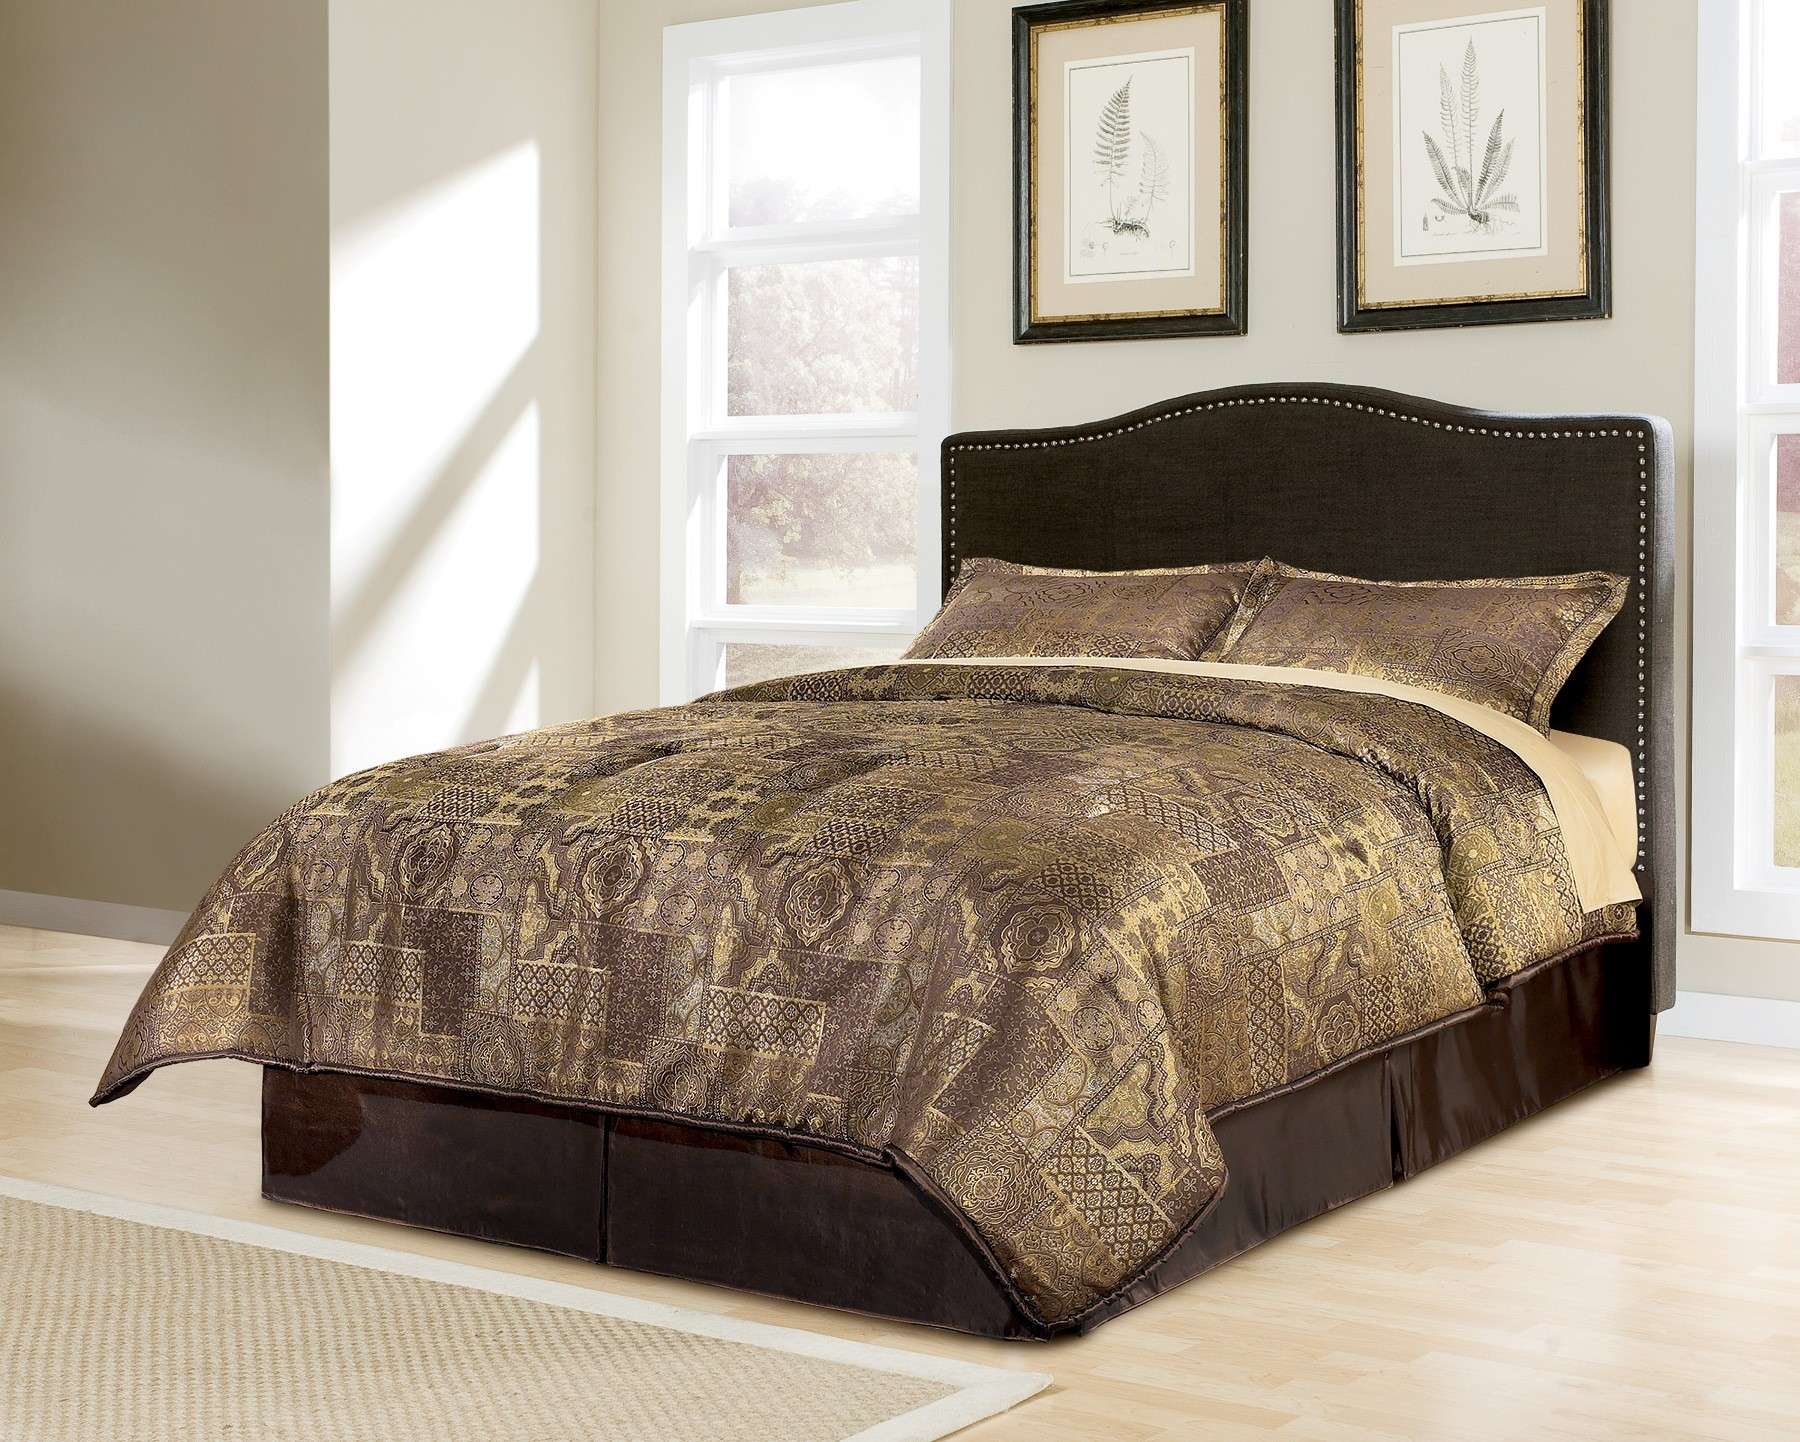 Portland Queen Upholstered Bed From Ashley B600 357 354